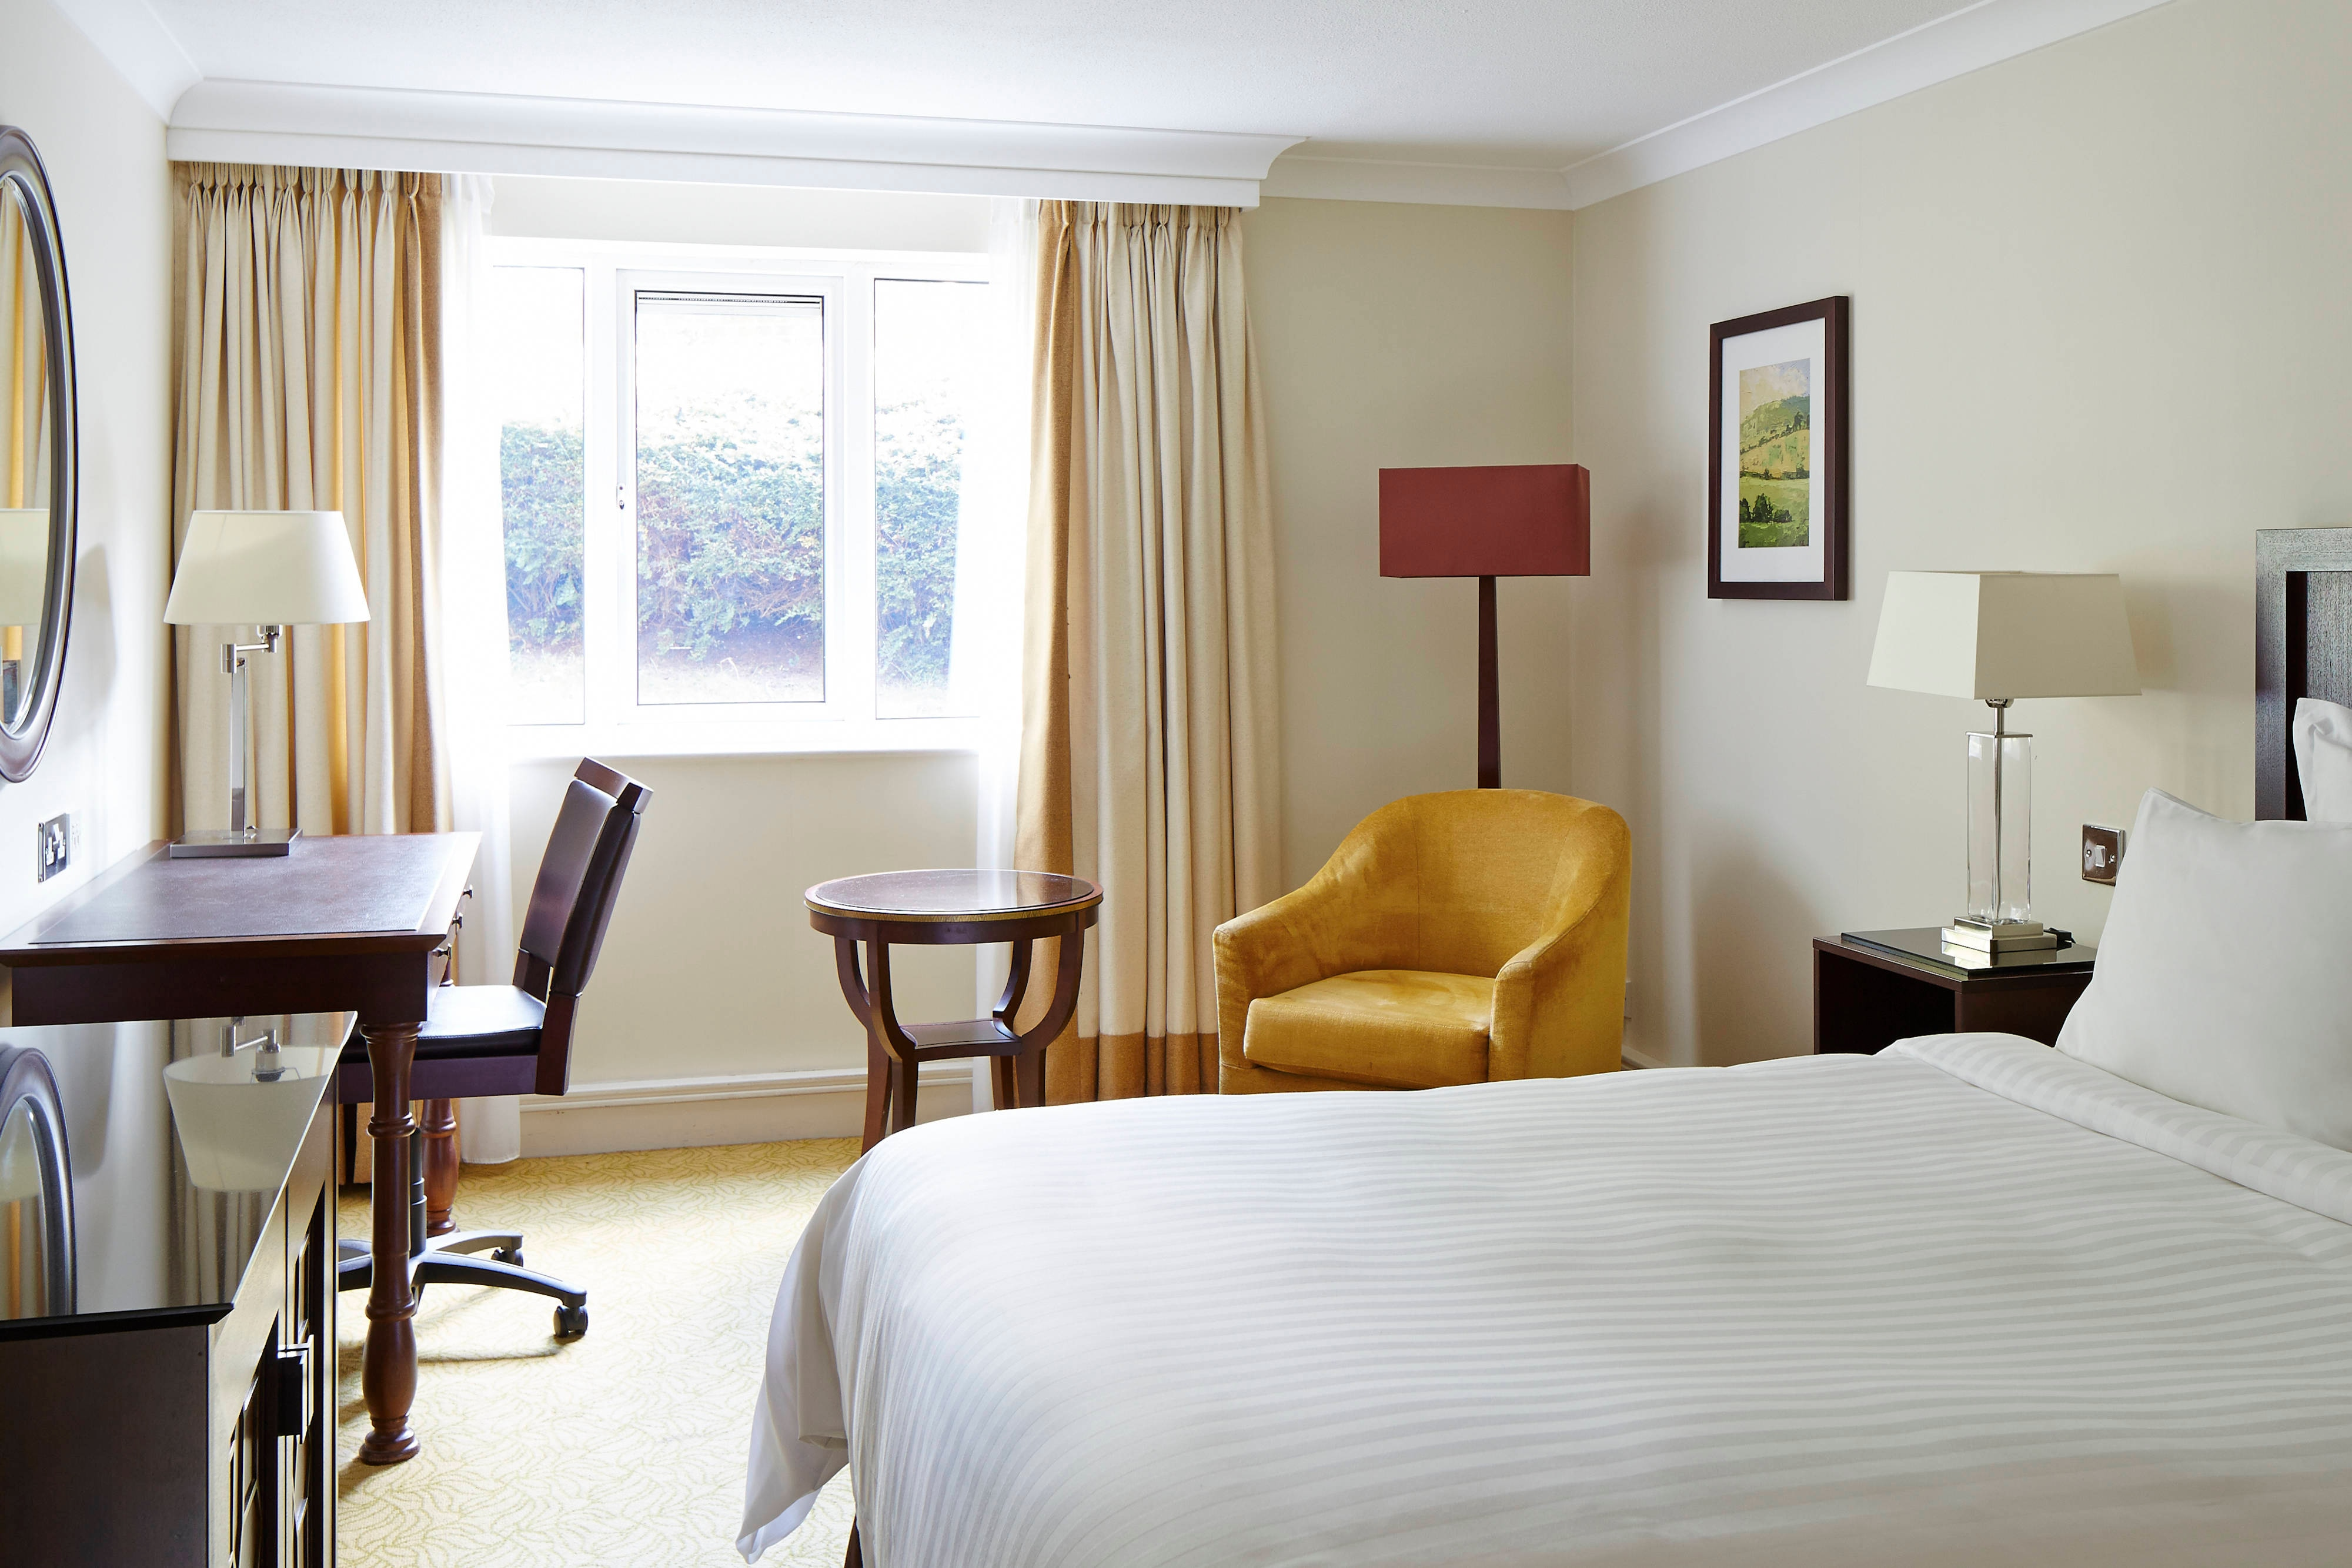 h tel marriott meon valley hotel country club h tels de southampton h tels southampton. Black Bedroom Furniture Sets. Home Design Ideas